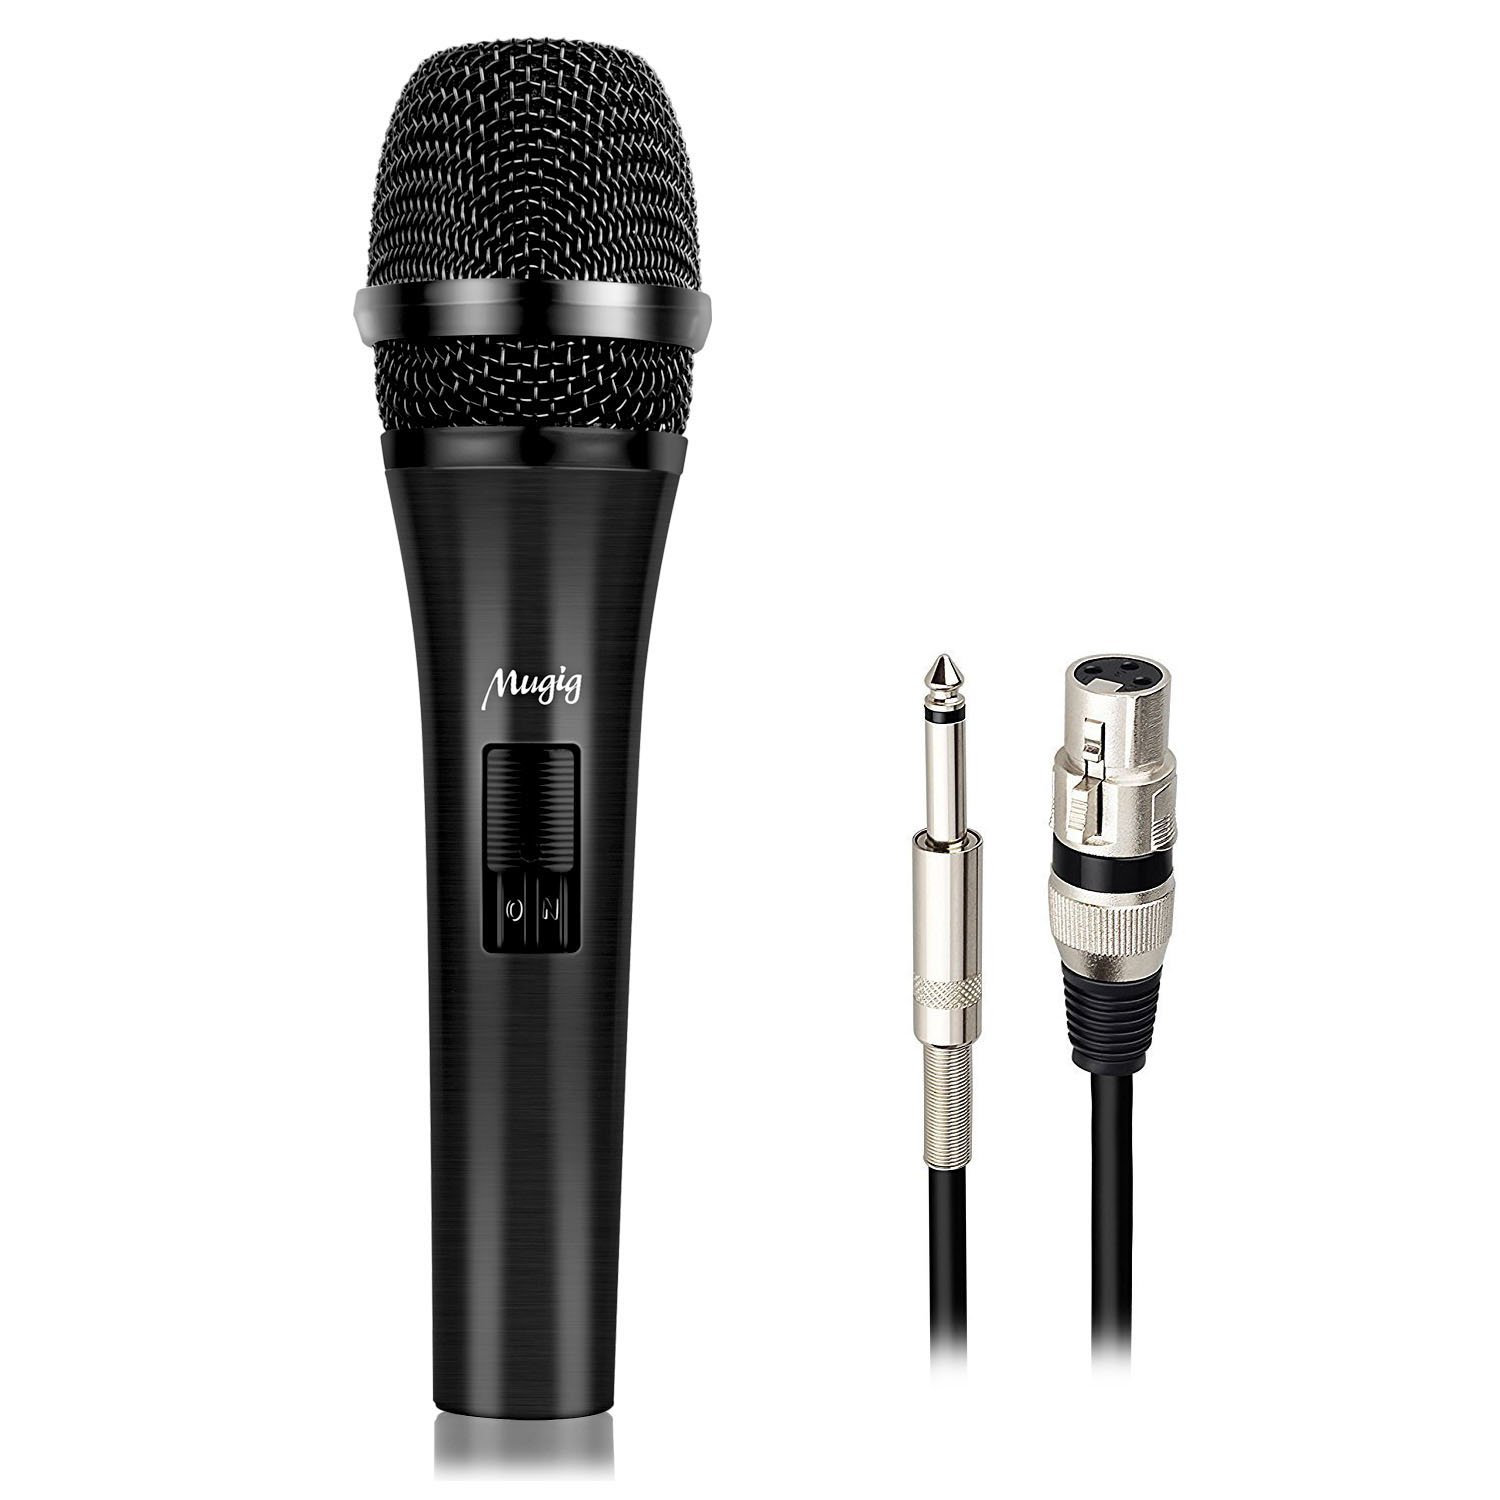 Mugig Vocal Dynamic Microphone with 20Ft XLR Cable, Cardioid Unidirectional Gold Plated Mic Head, for Performance, Stage, Karaoke, Public Speaking, Recording, Speech, Wedding, Indoor Outdoor Activity